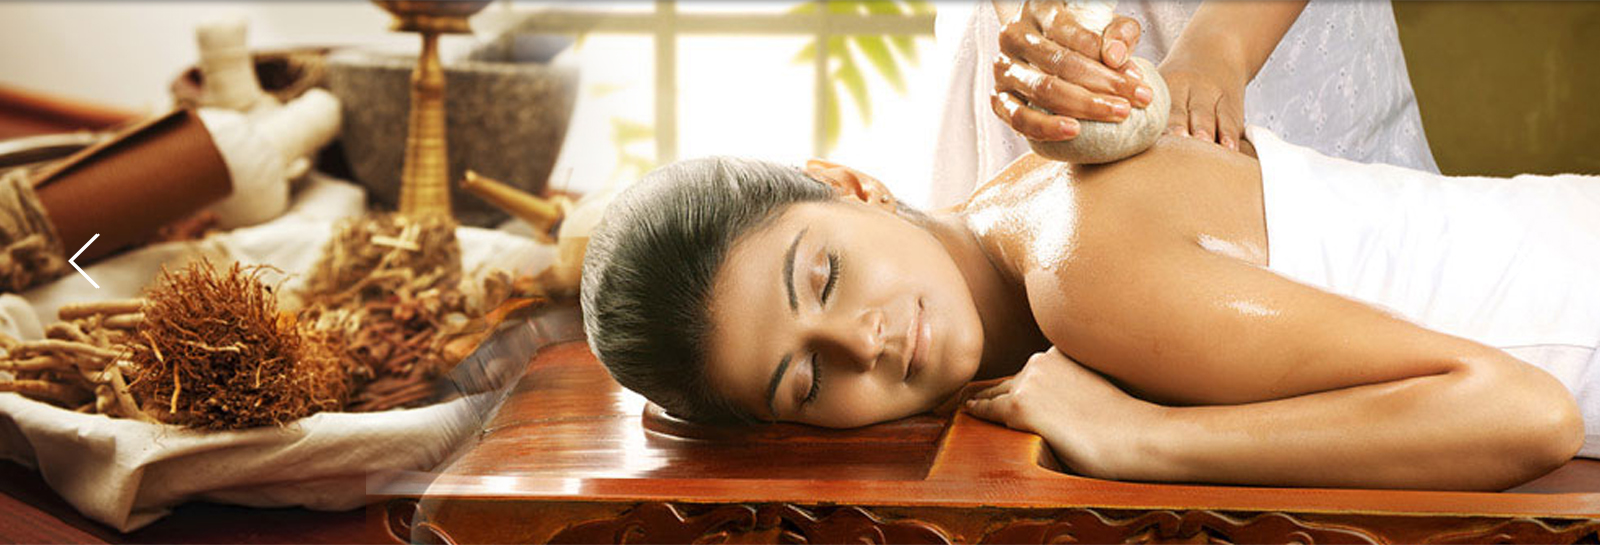 How to Plan and Design an Ayurvedic Wellness Spa ...